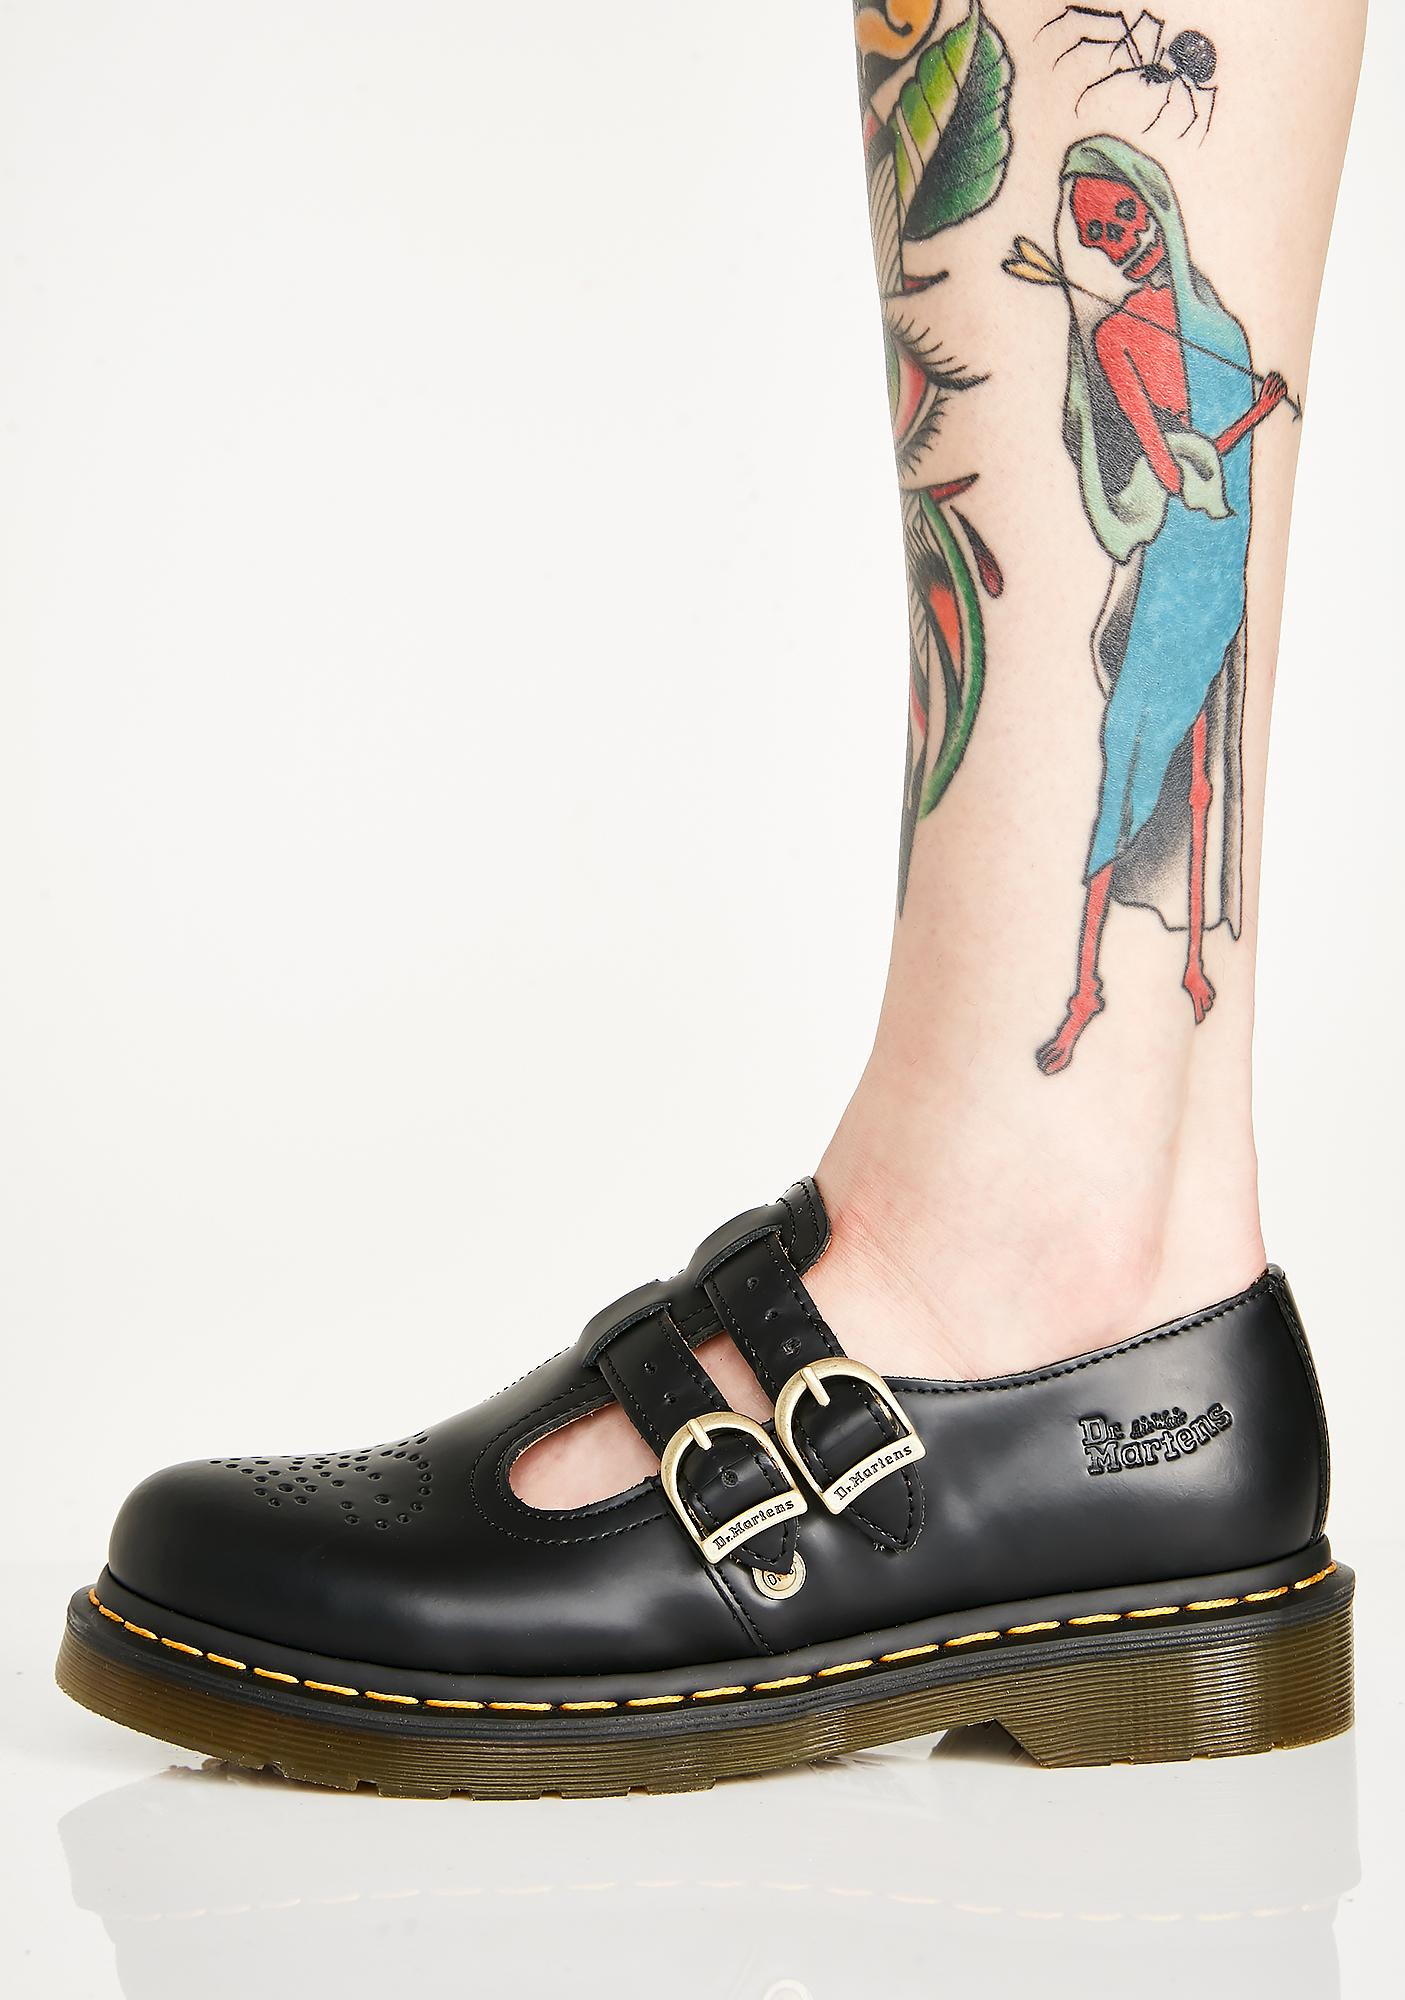 Dr. Martens 8065 Mary Jane Flats